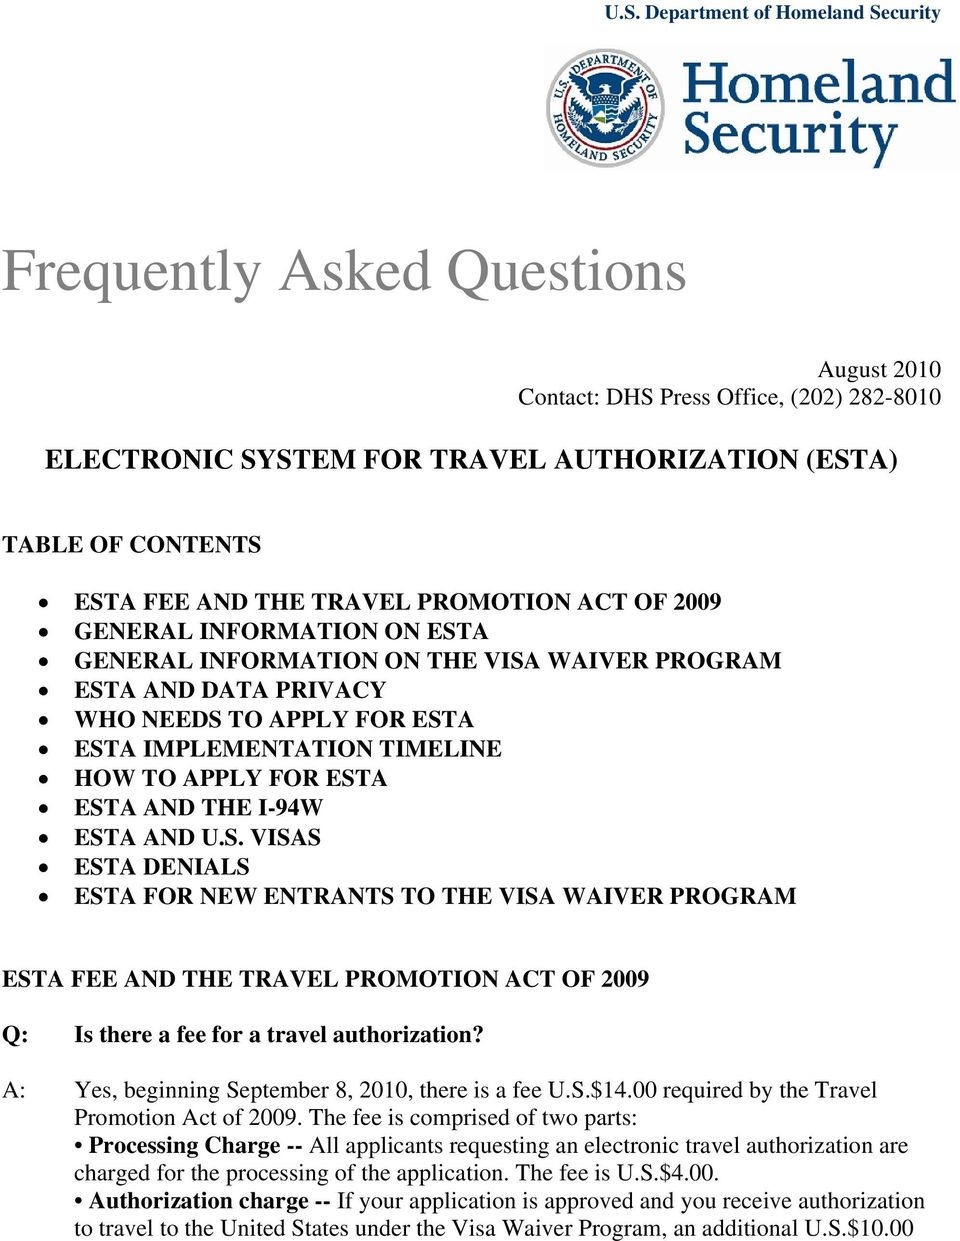 FOR ESTA ESTA AND THE I-94W ESTA AND U.S. VISAS ESTA DENIALS ESTA FOR NEW ENTRANTS TO THE VISA WAIVER PROGRAM ESTA FEE AND THE TRAVEL PROMOTION ACT OF 2009 Q: Is there a fee for a travel authorization?